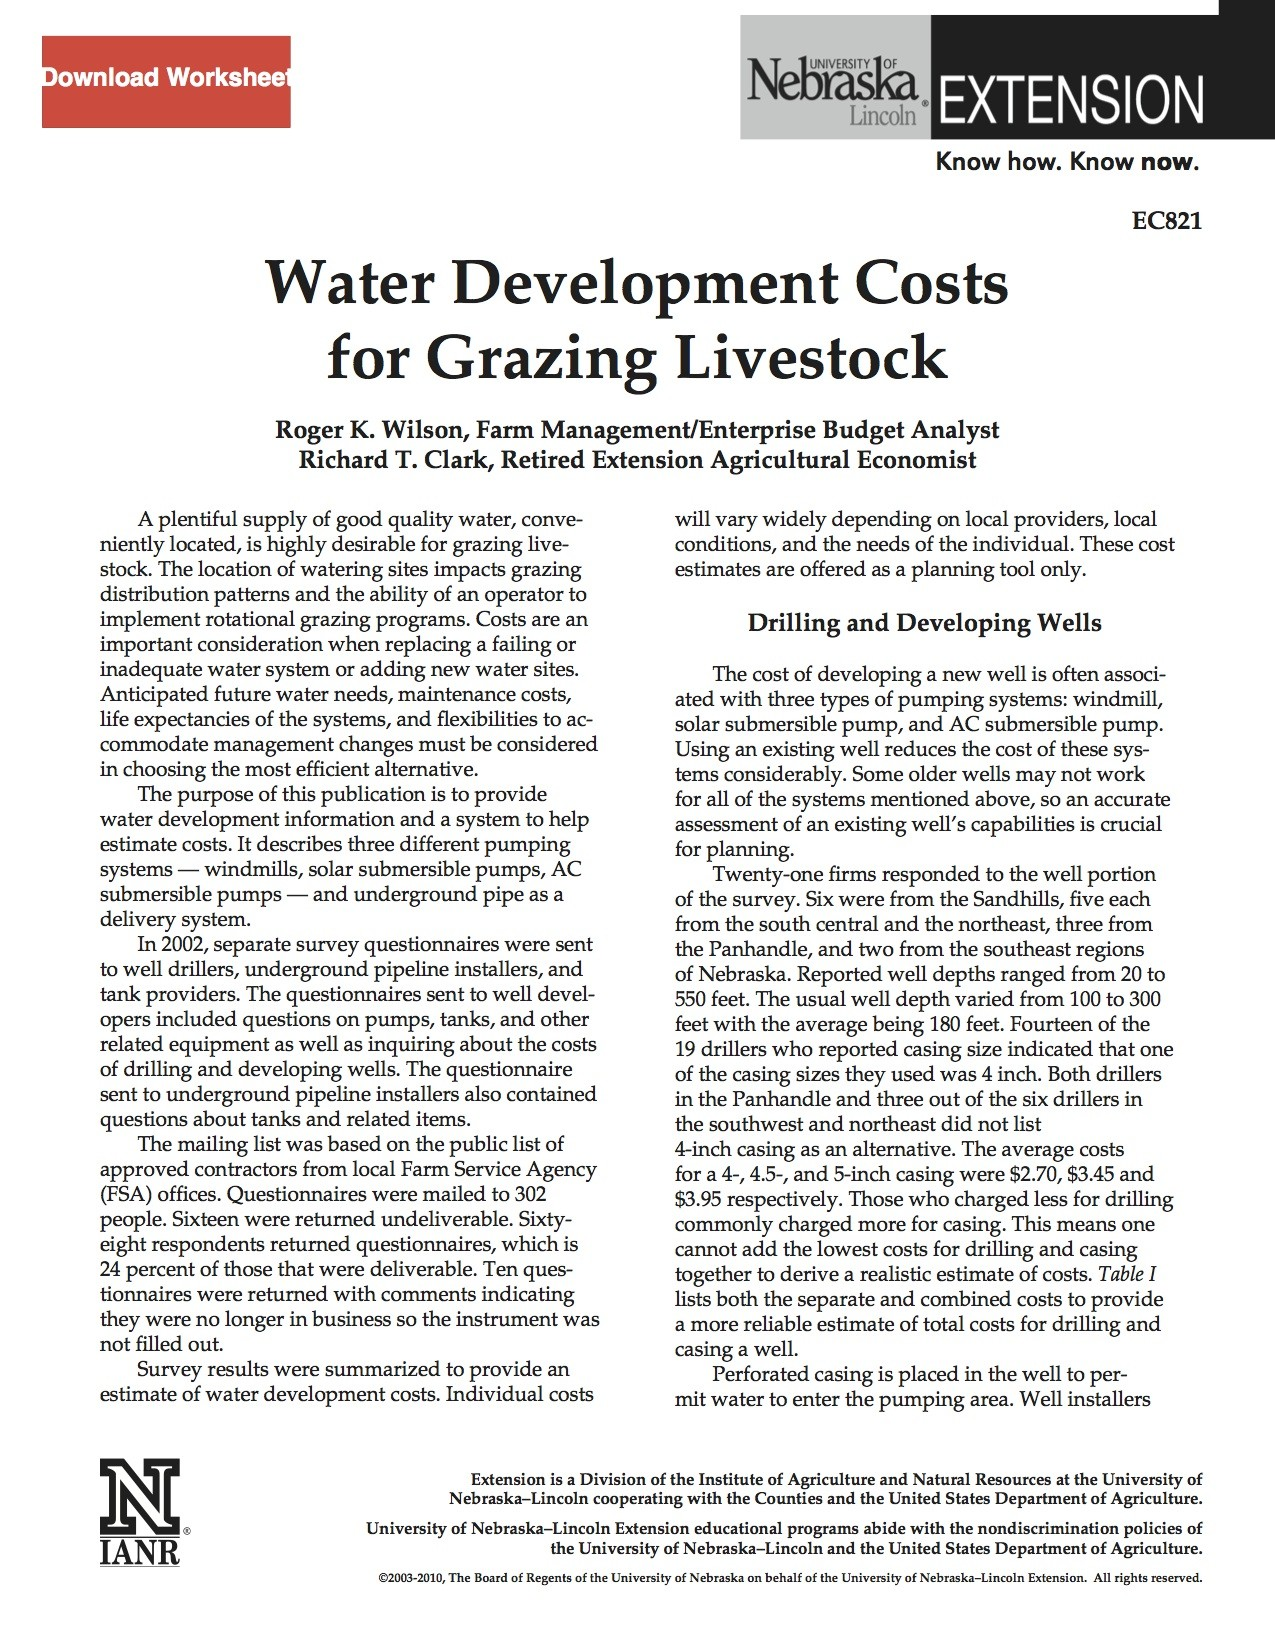 Water Development Costs for Livestock